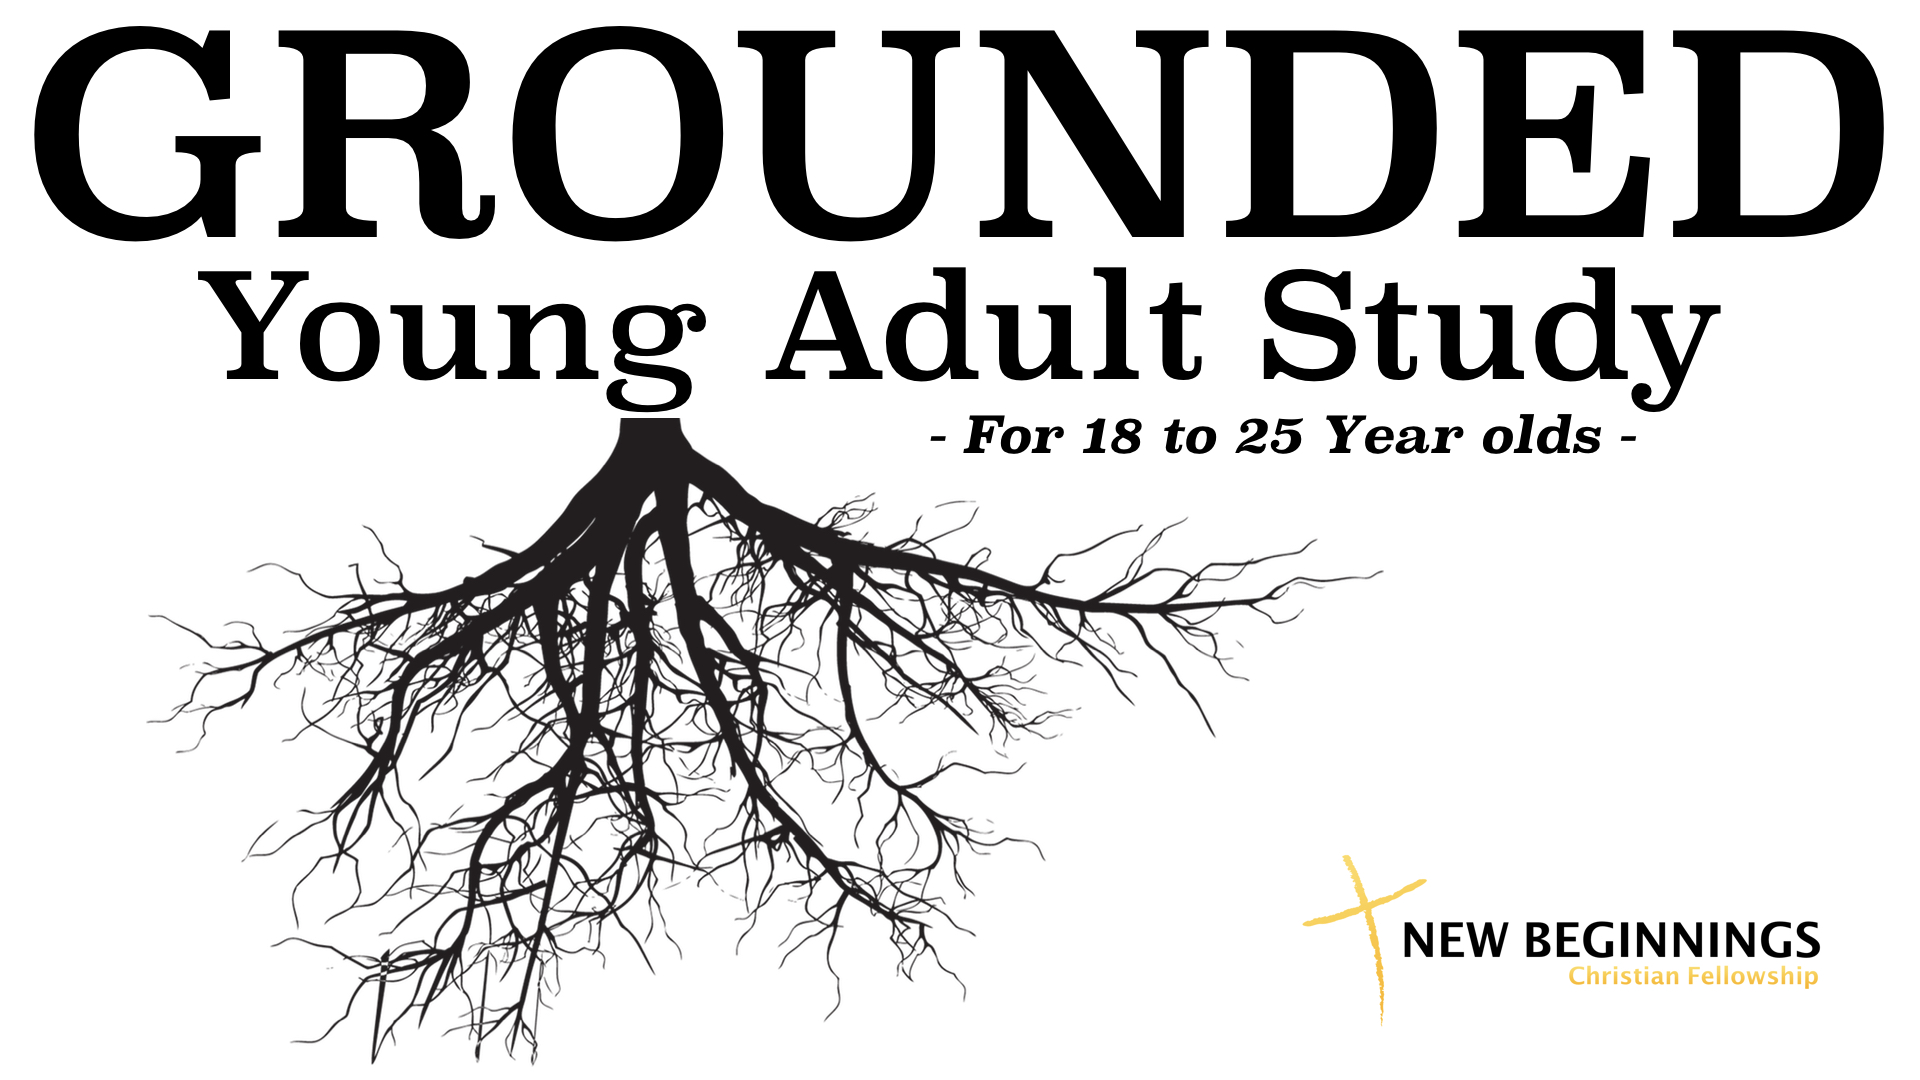 Grounded Young Adult Study